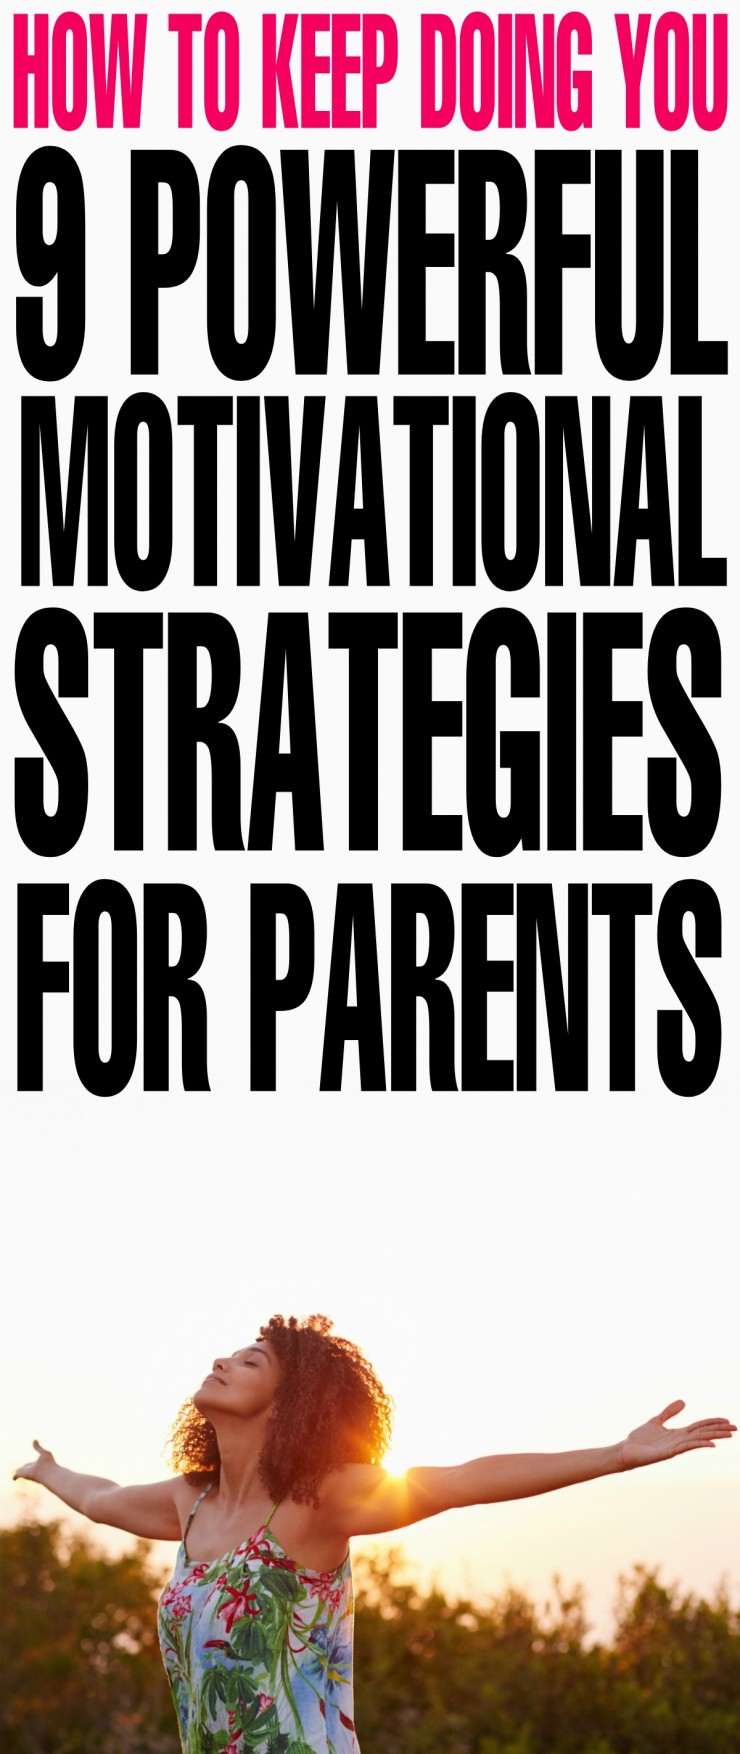 How to Keep Doing You: 9 Powerful Motivational Strategies for Parents